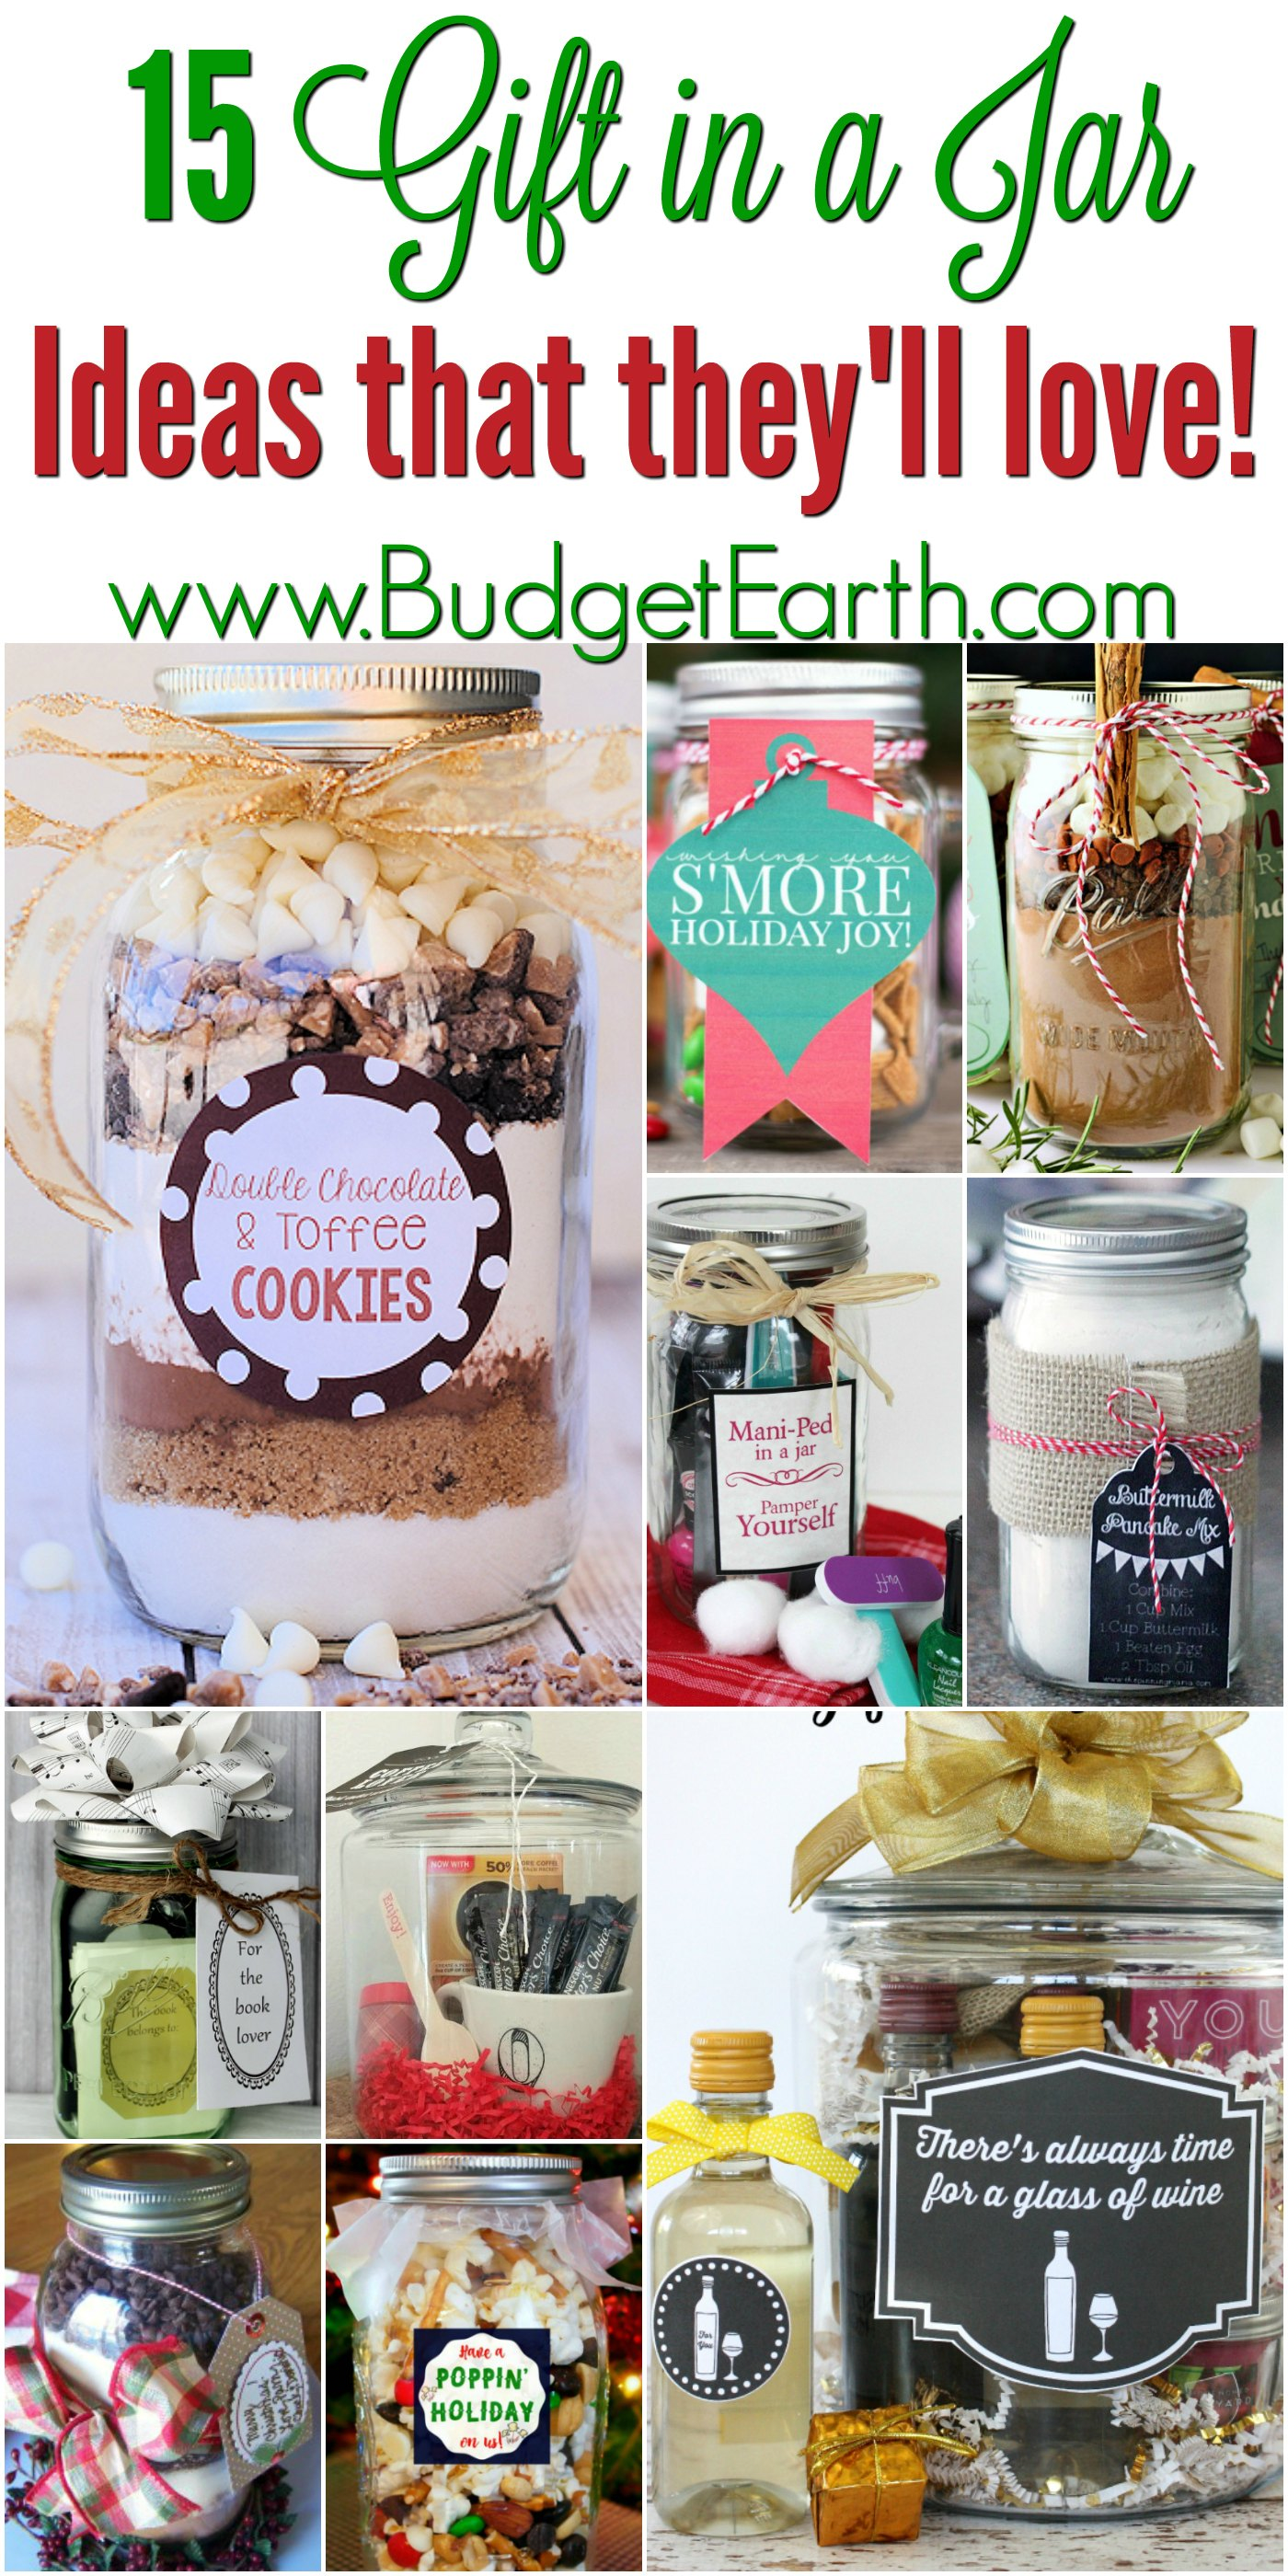 Looking for gift ideas for friends & family on your holiday list? Check out these 15 Gift in a Jar projects everyone is sure to love!